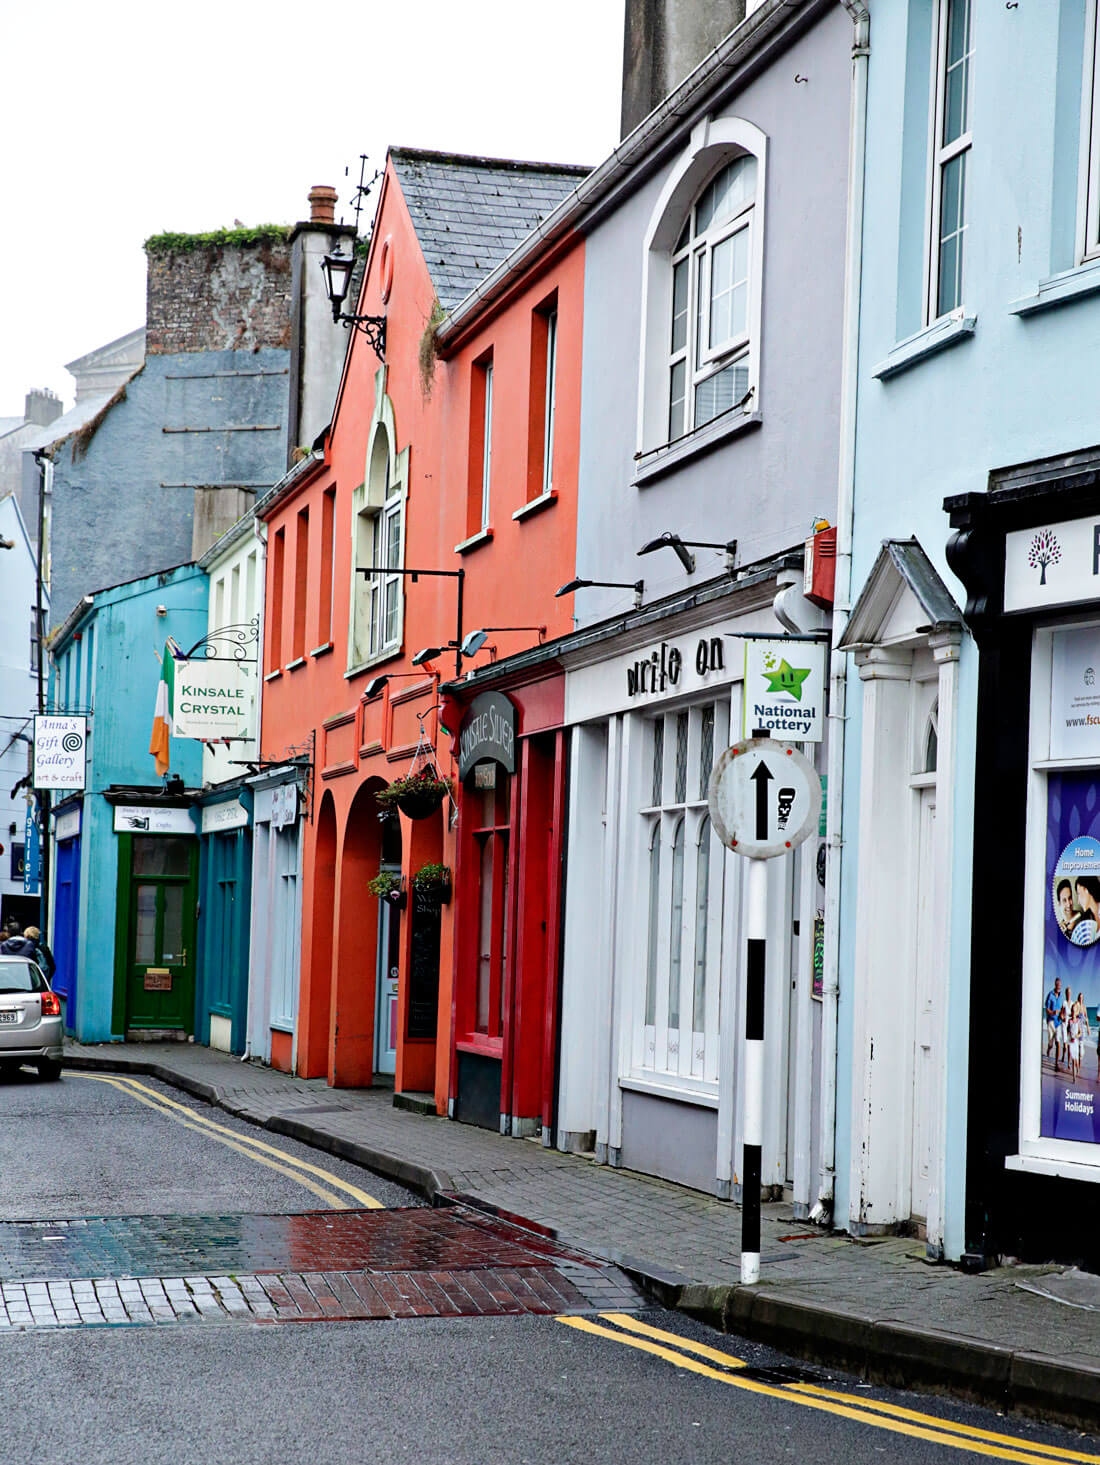 Beautiful bright colored buildings in Kinsale, Ireland